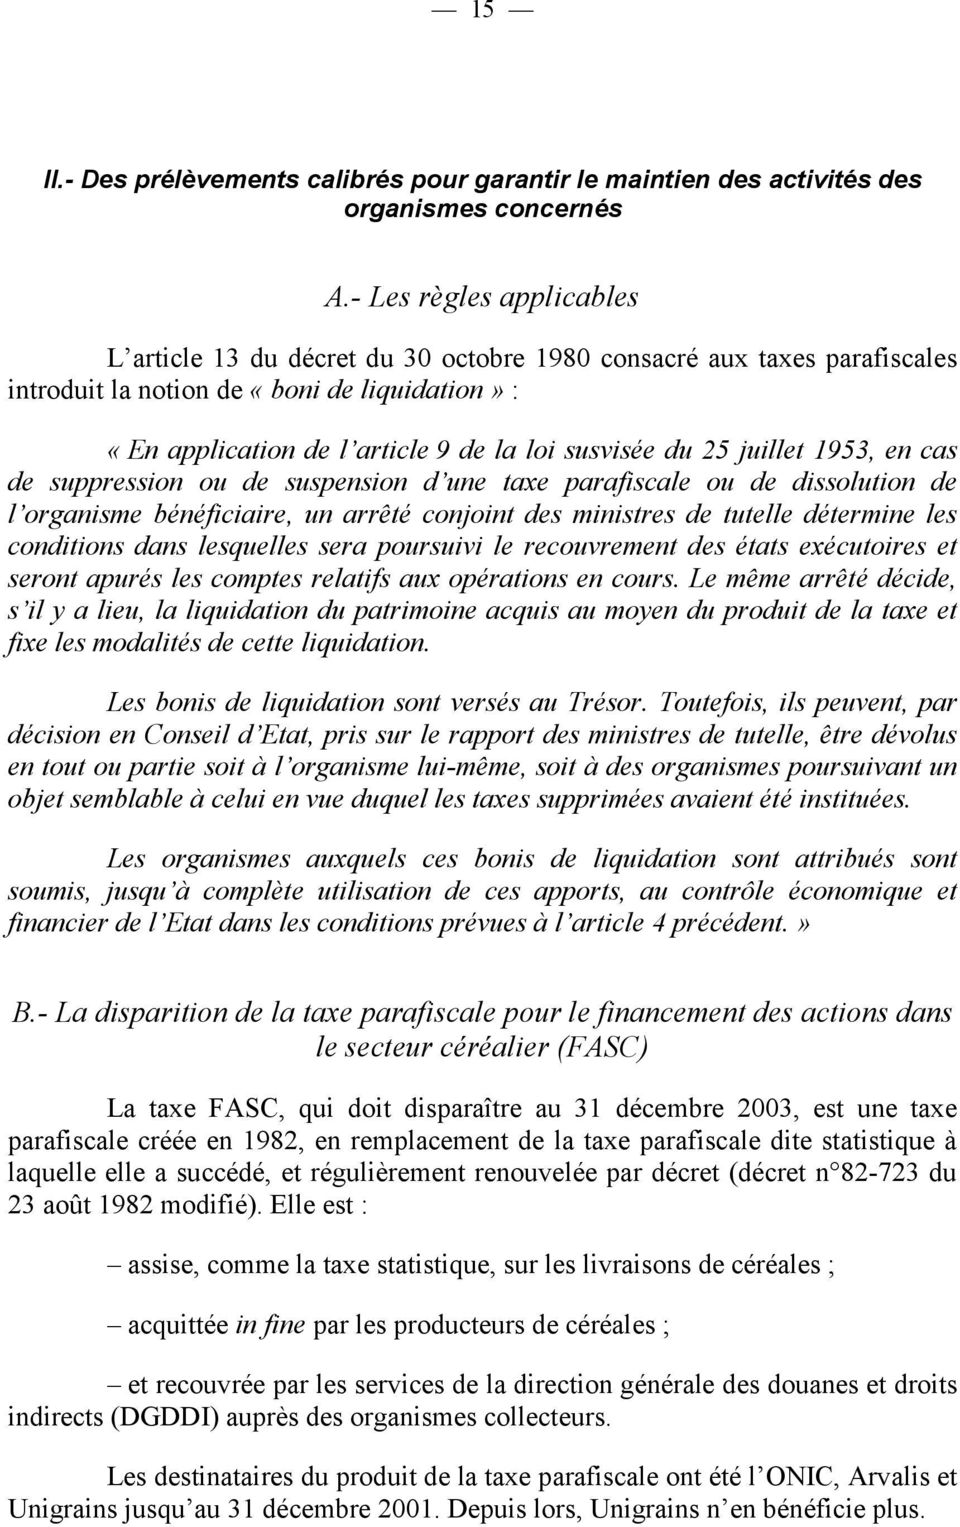 25 juillet 1953, en cas de suppression ou de suspension d une taxe parafiscale ou de dissolution de l organisme bénéficiaire, un arrêté conjoint des ministres de tutelle détermine les conditions dans